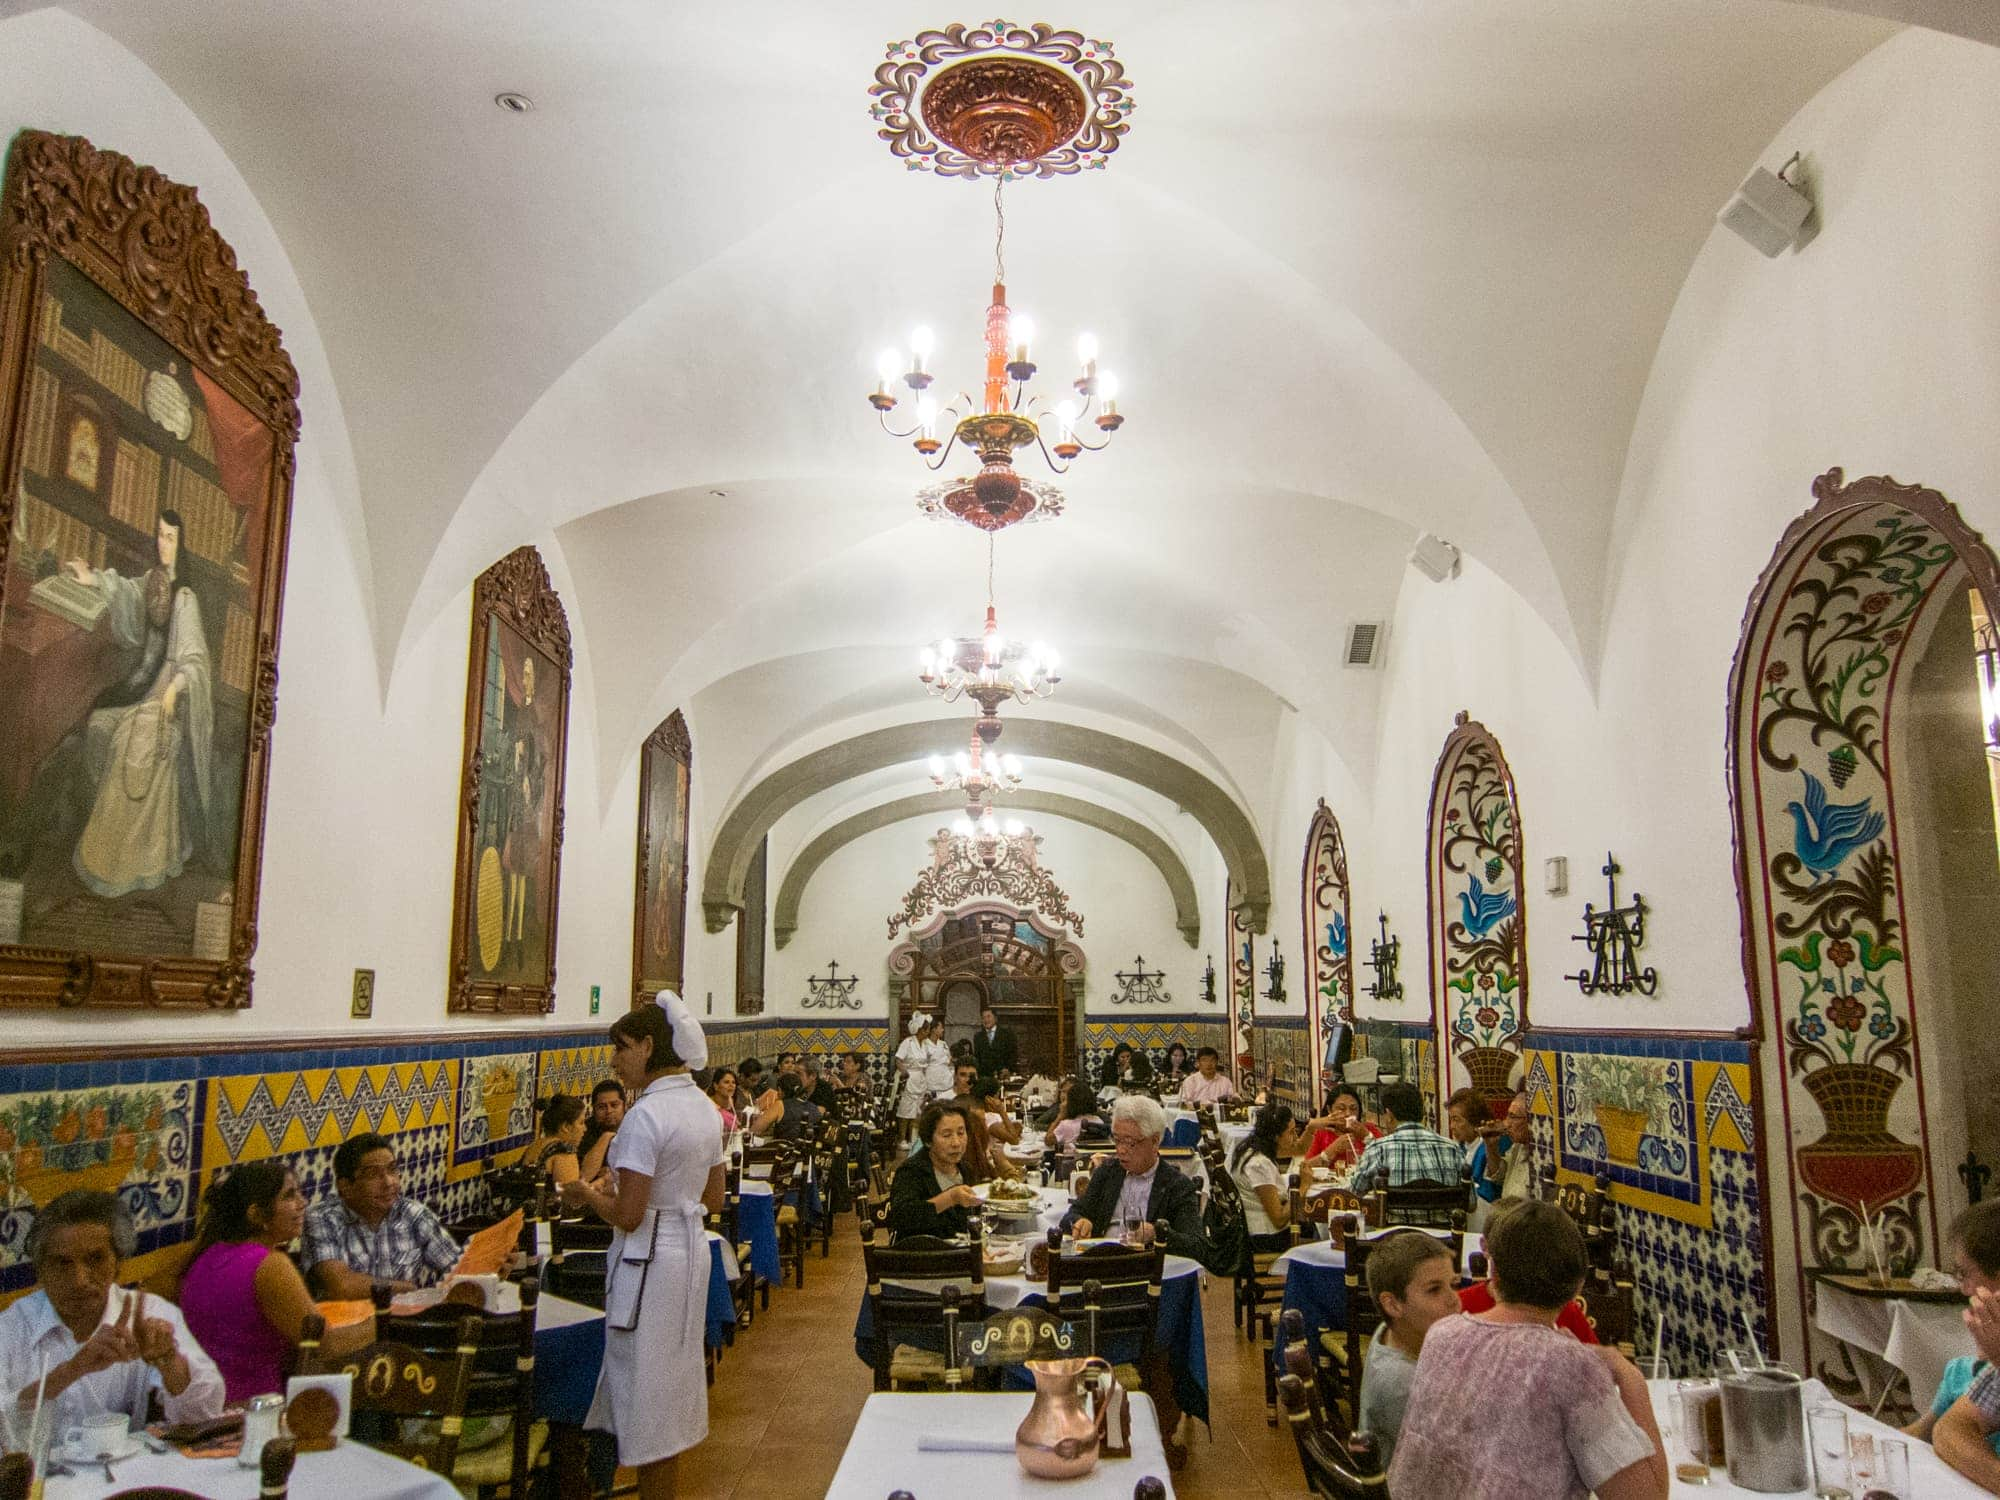 Cafe de Tacuba